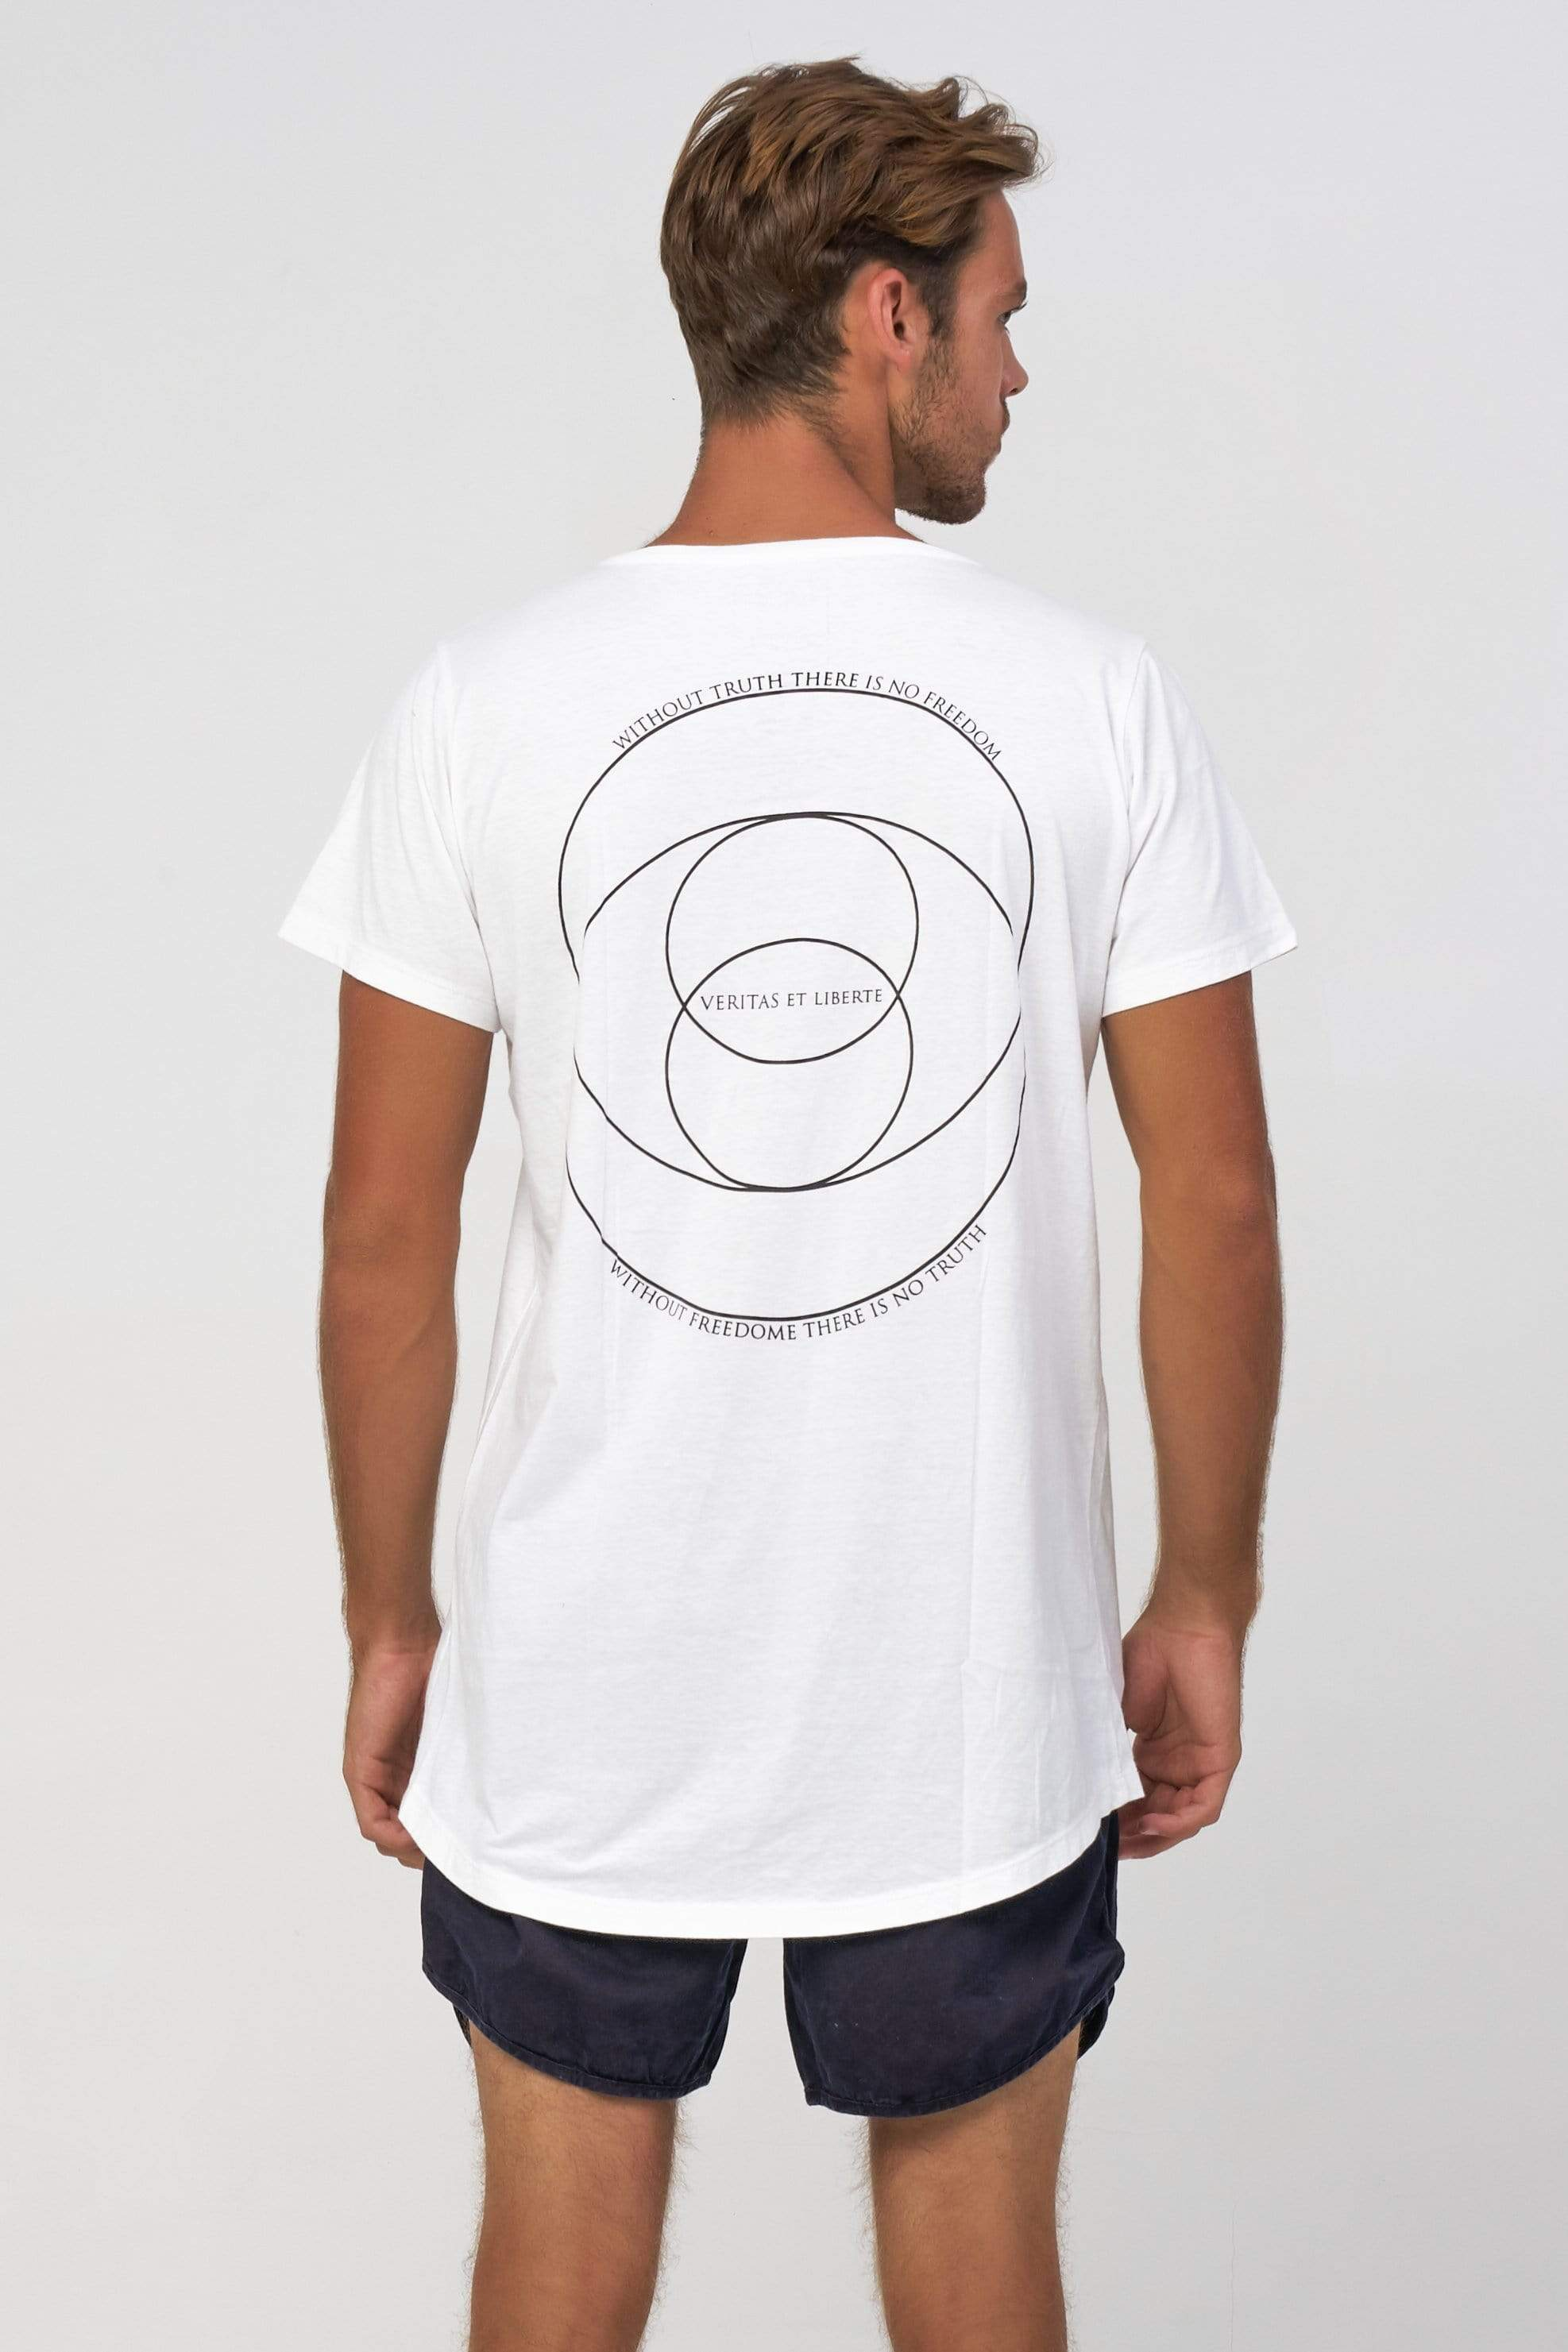 Lvt Golden Ratio - Man T-Shirt - VERITAS & LIBERTE